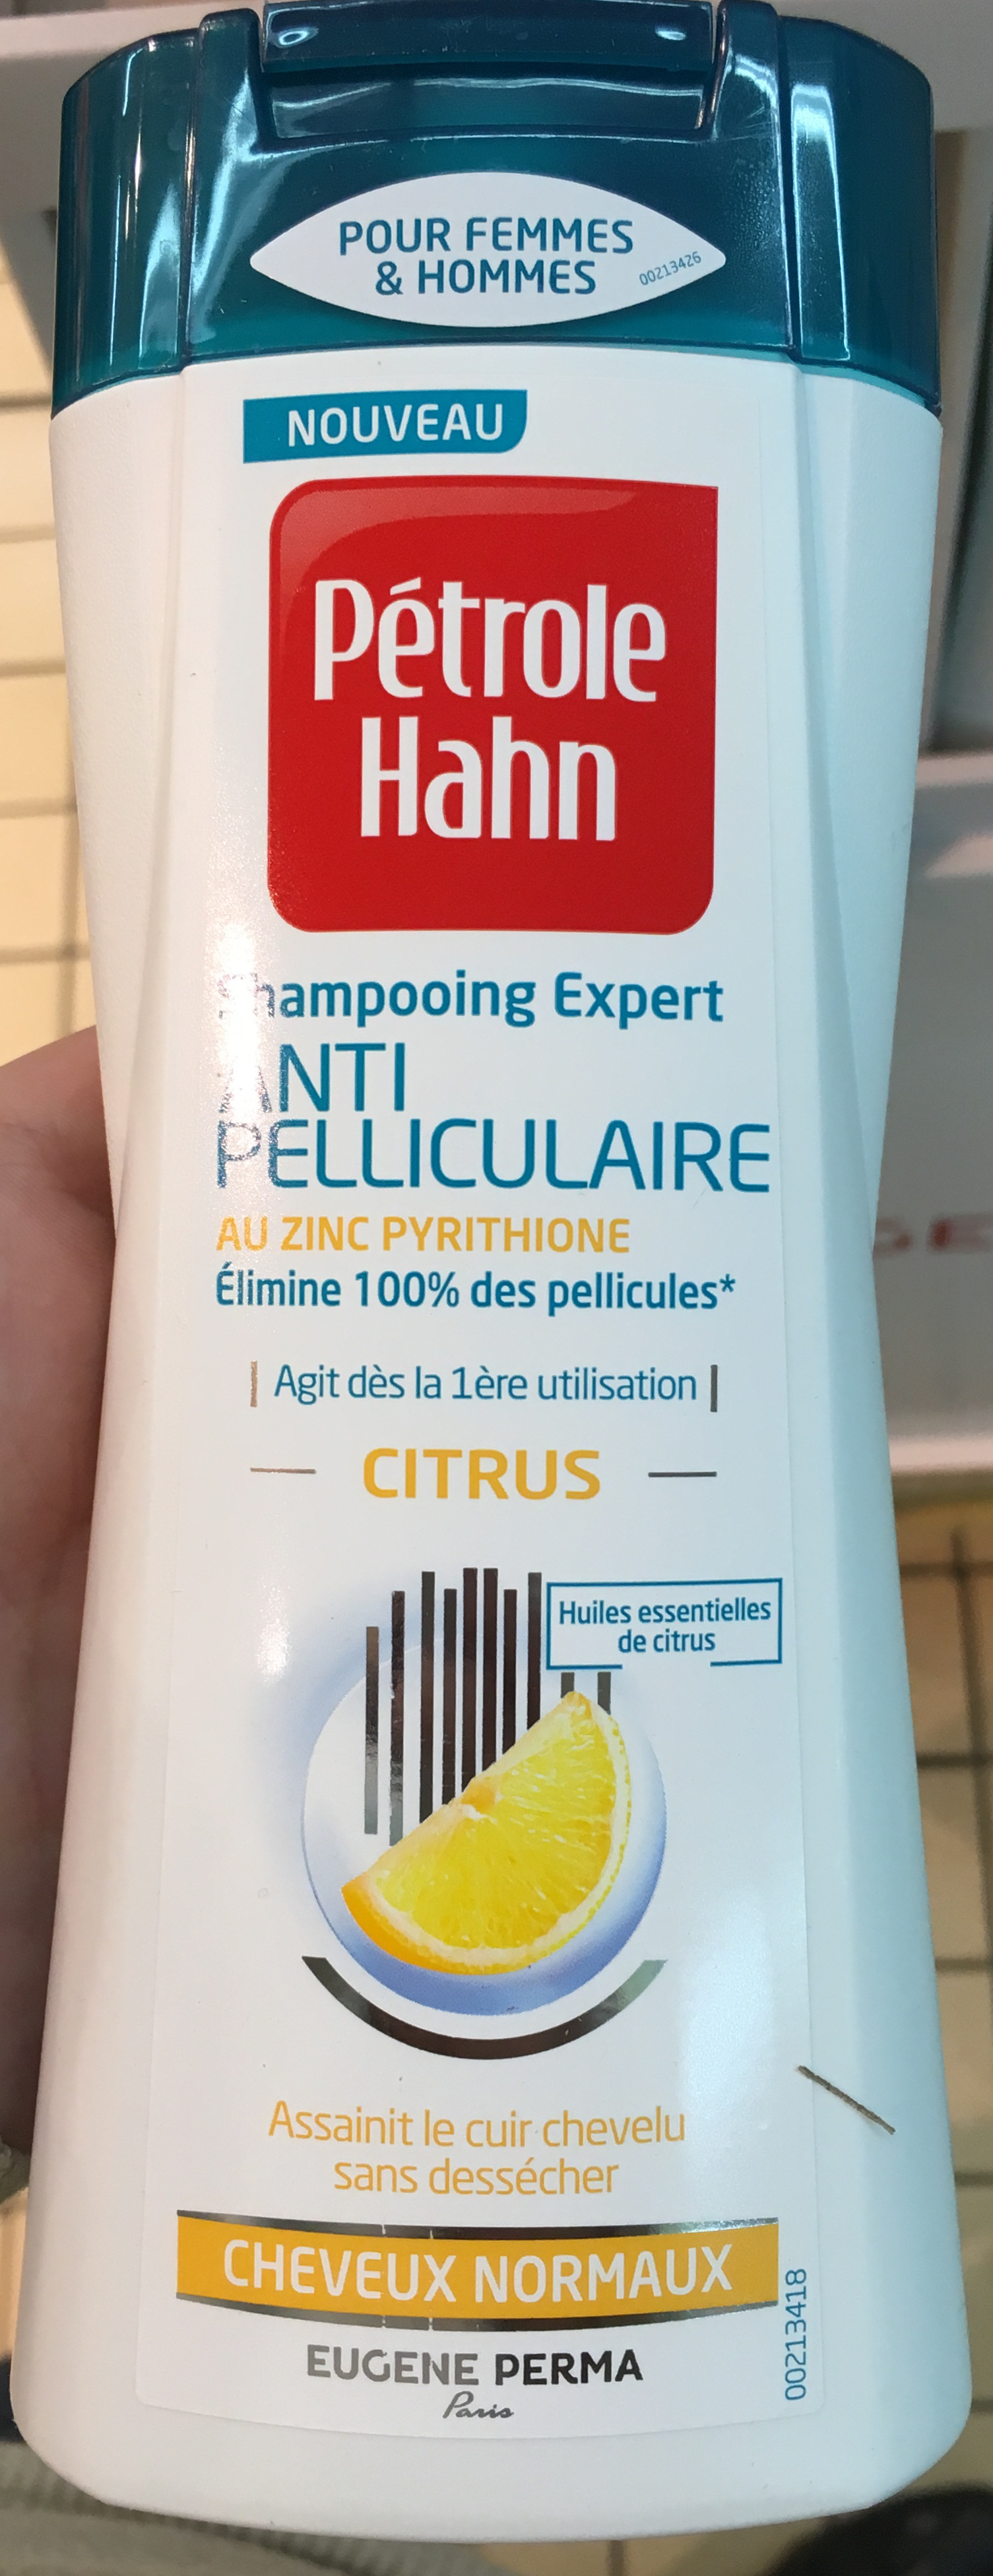 Shampooing expert anti pelliculaire Citrus - Product